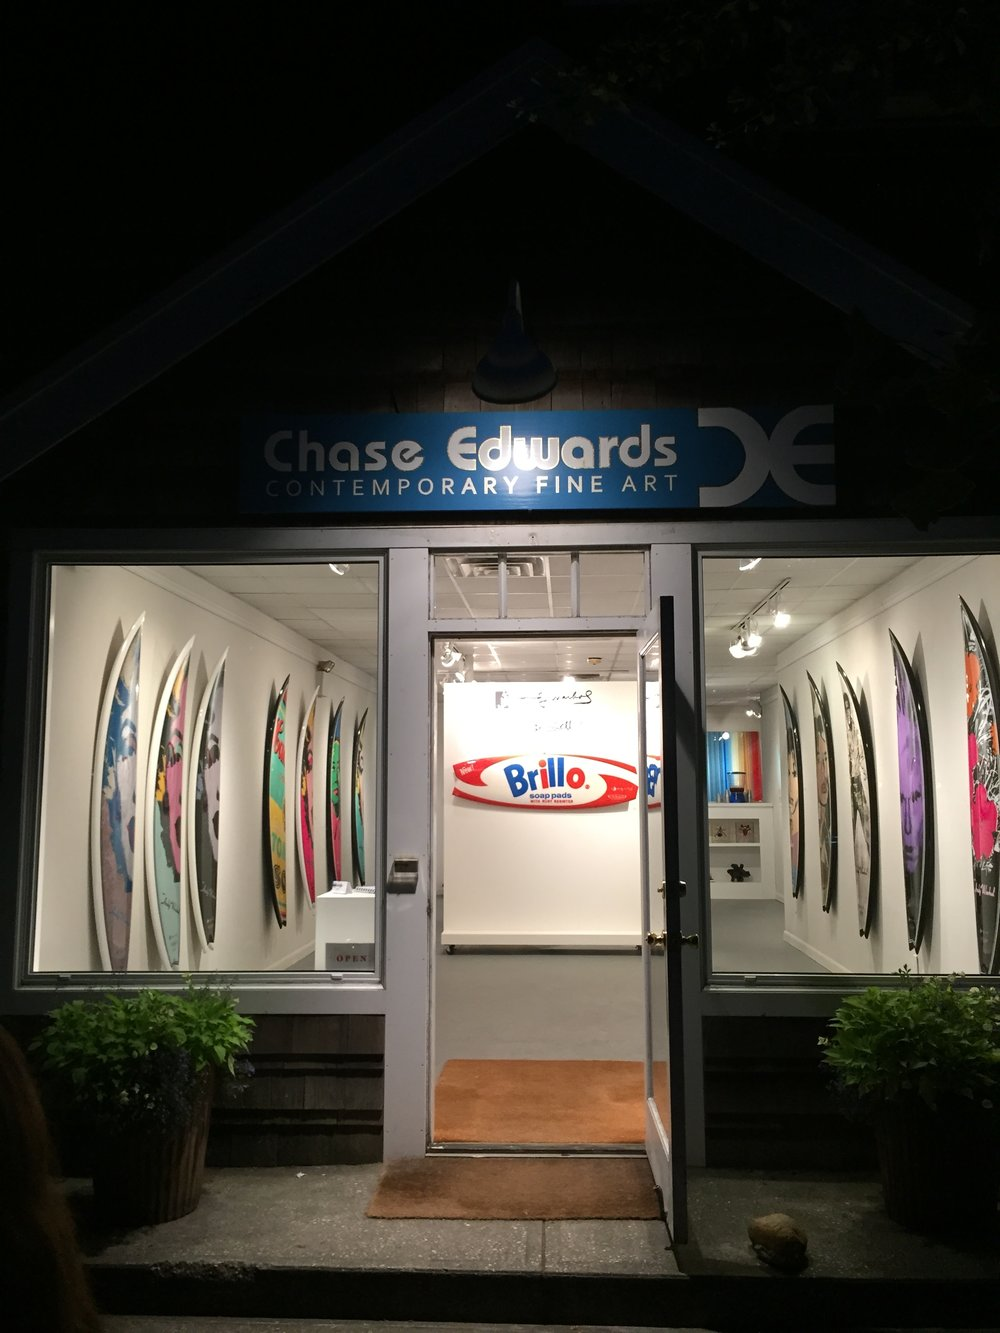 Chase Edwards Contemporary Fine Art  2462 Main St.  Bridgehampton, NY 11932